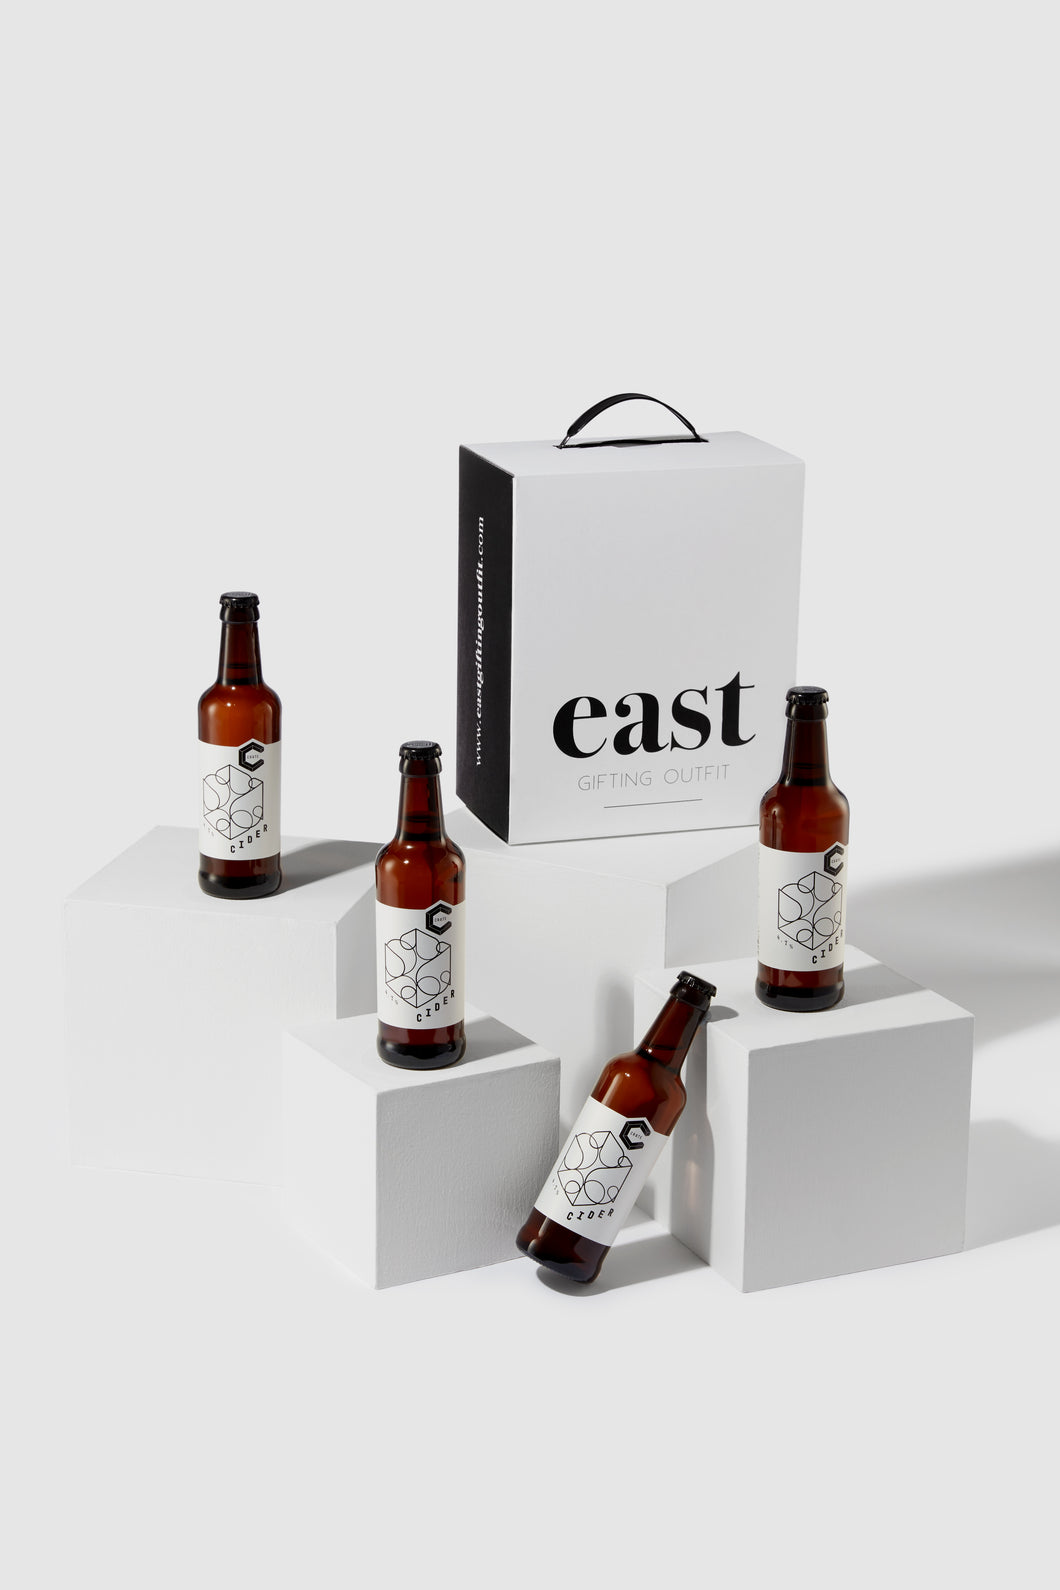 The River Lea Craft Cider Gift, East Gifting Outfit Luxury Monochrome Gift Box, 4x Semi-sweet Craft Apple Ciders from Crate Brewery